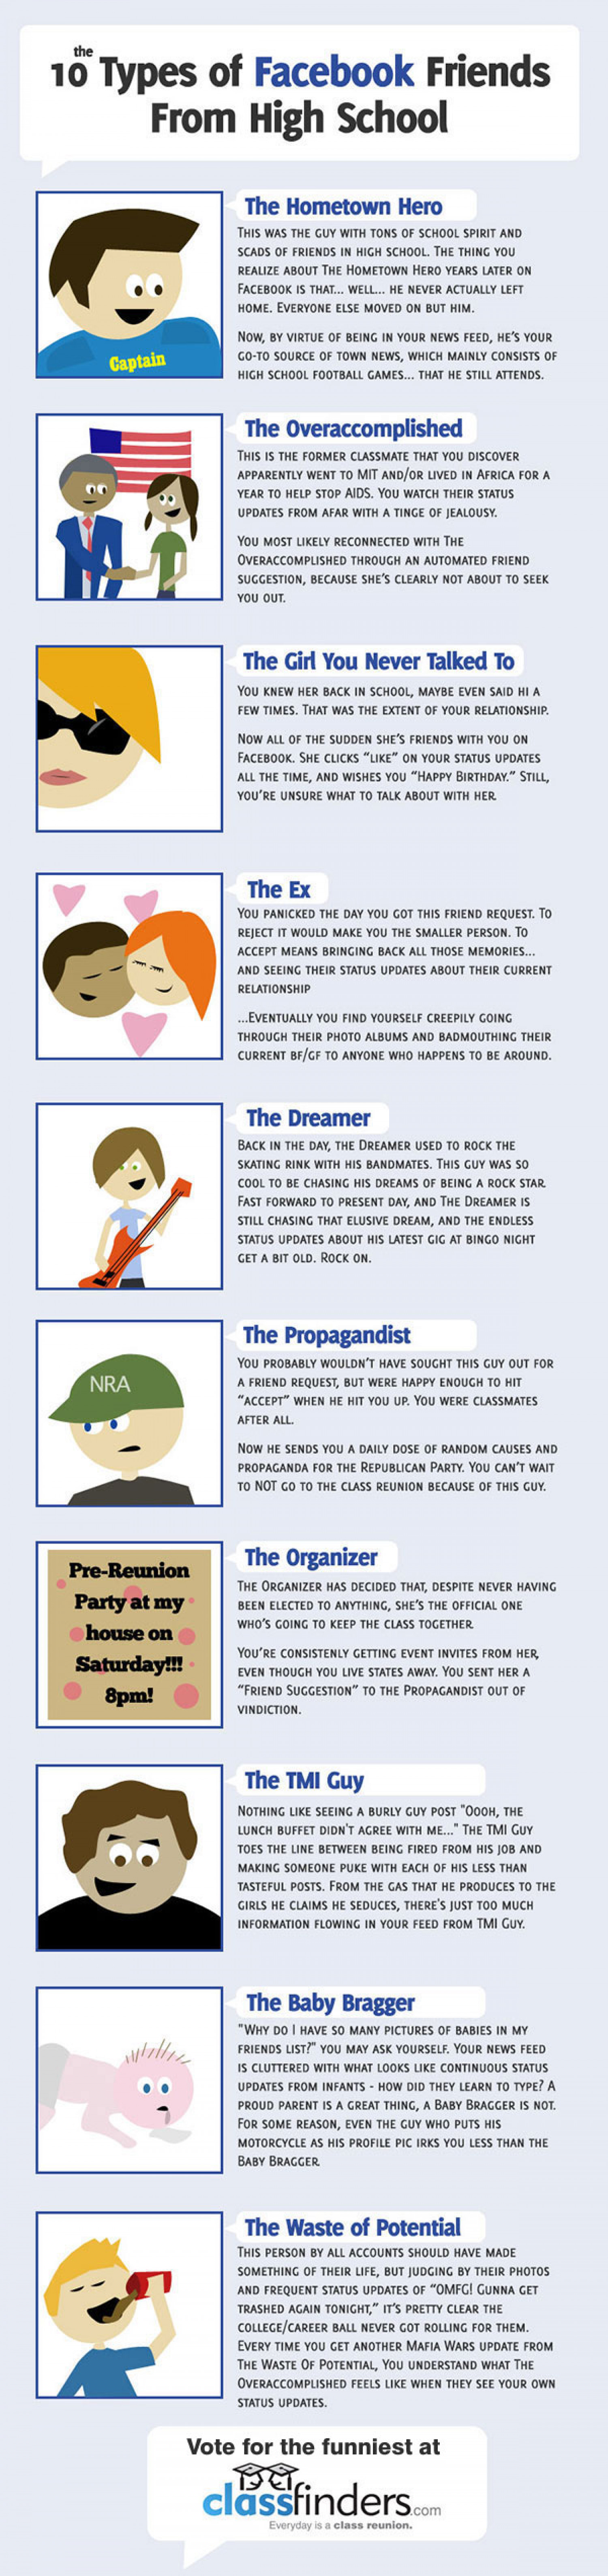 10 Types of Facebook Friends from High School  Infographic